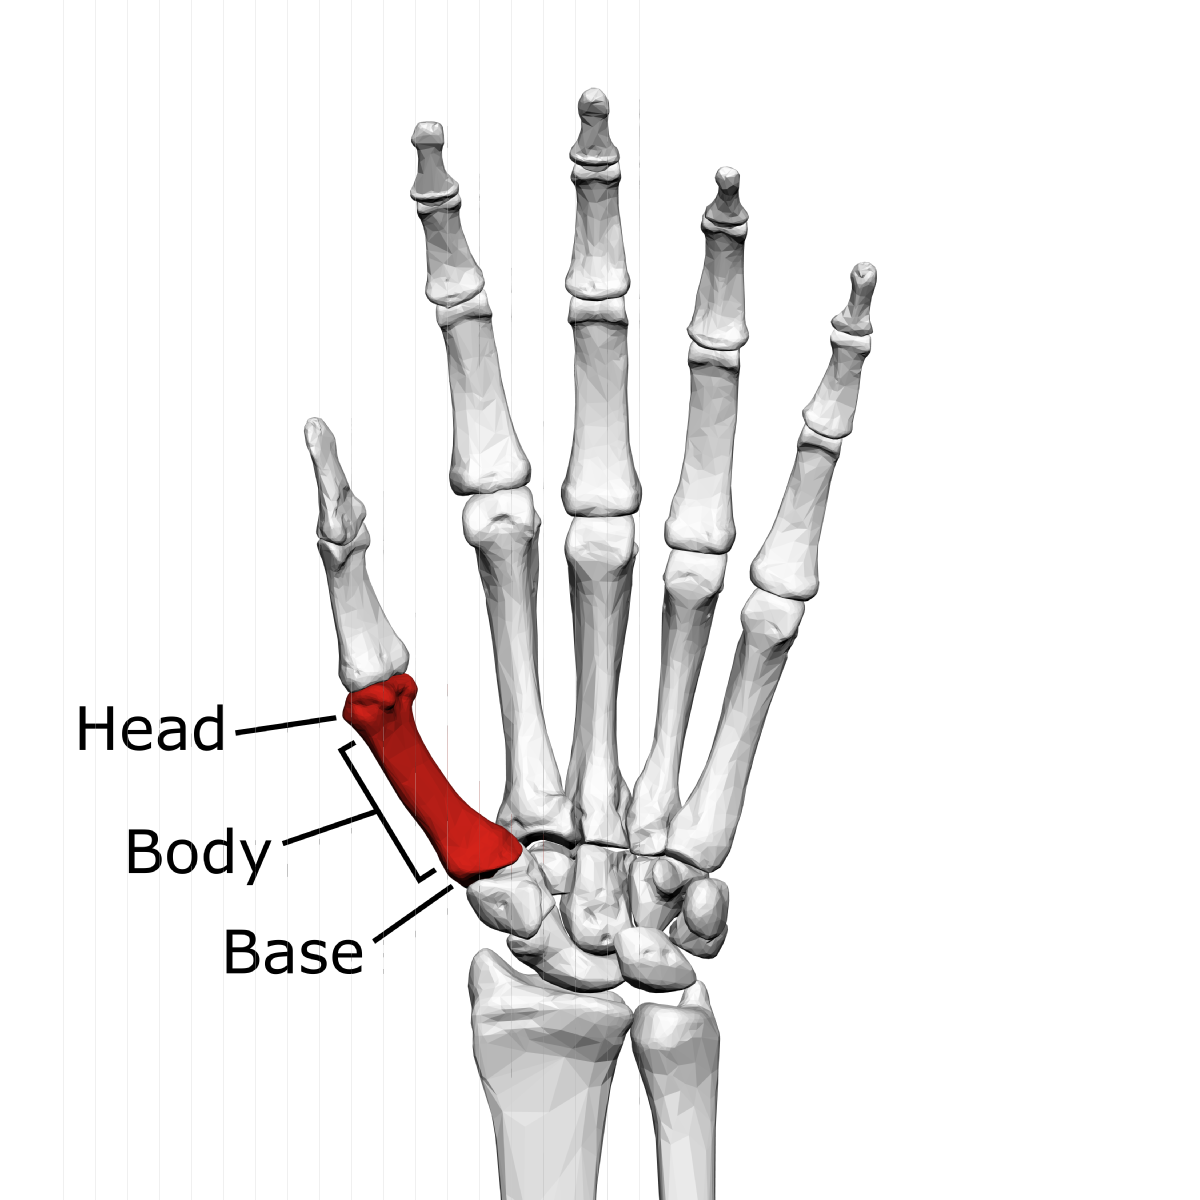 phalanges and also metacarpals